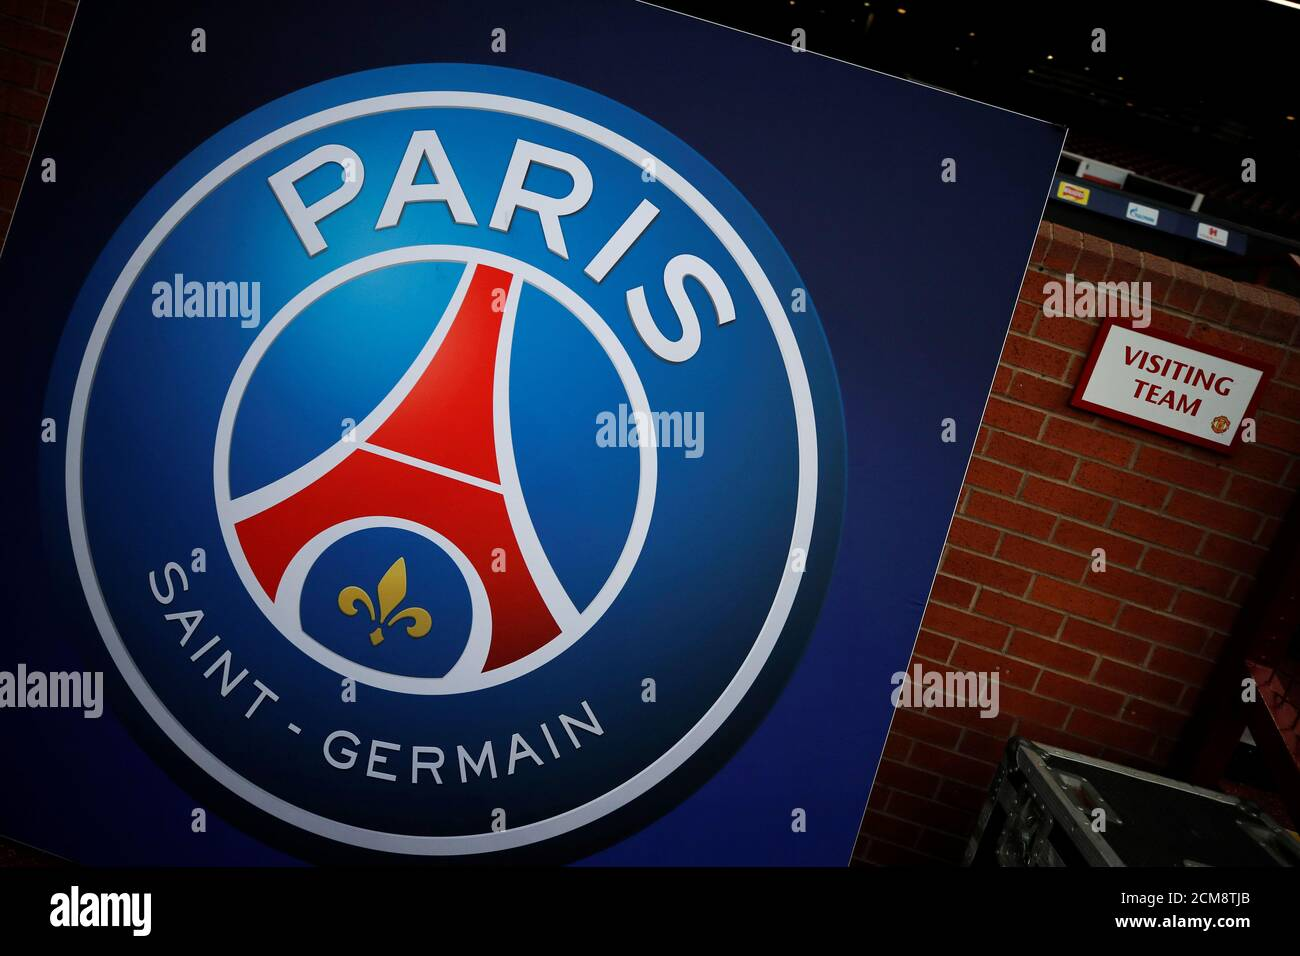 Psg Crest High Resolution Stock Photography And Images Alamy